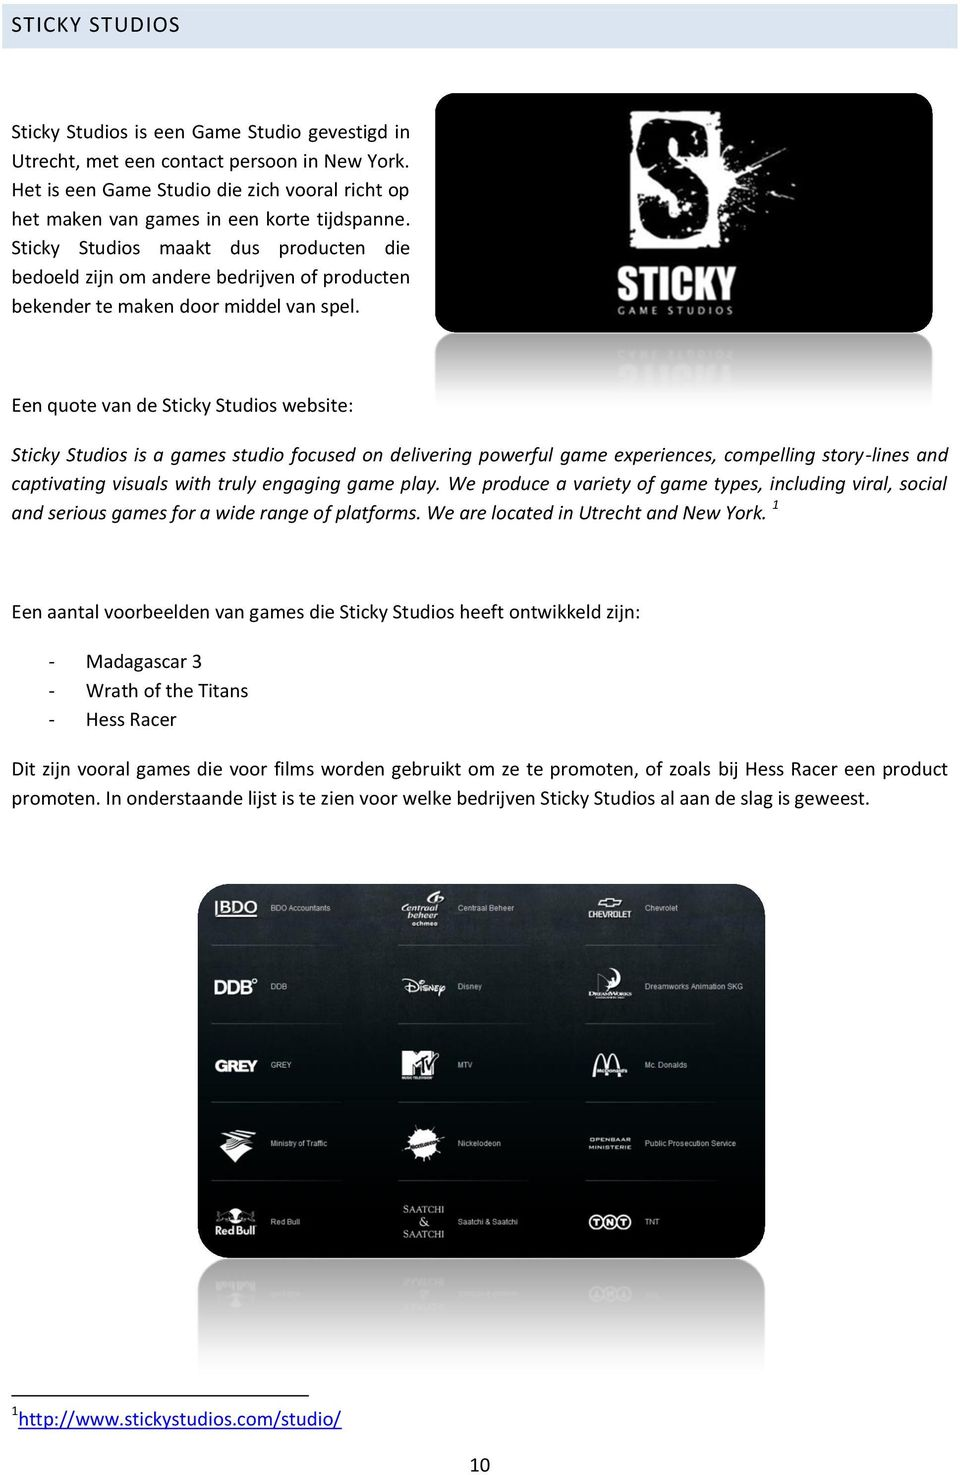 Een quote van de Sticky Studios website: Sticky Studios is a games studio focused on delivering powerful game experiences, compelling story-lines and captivating visuals with truly engaging game play.